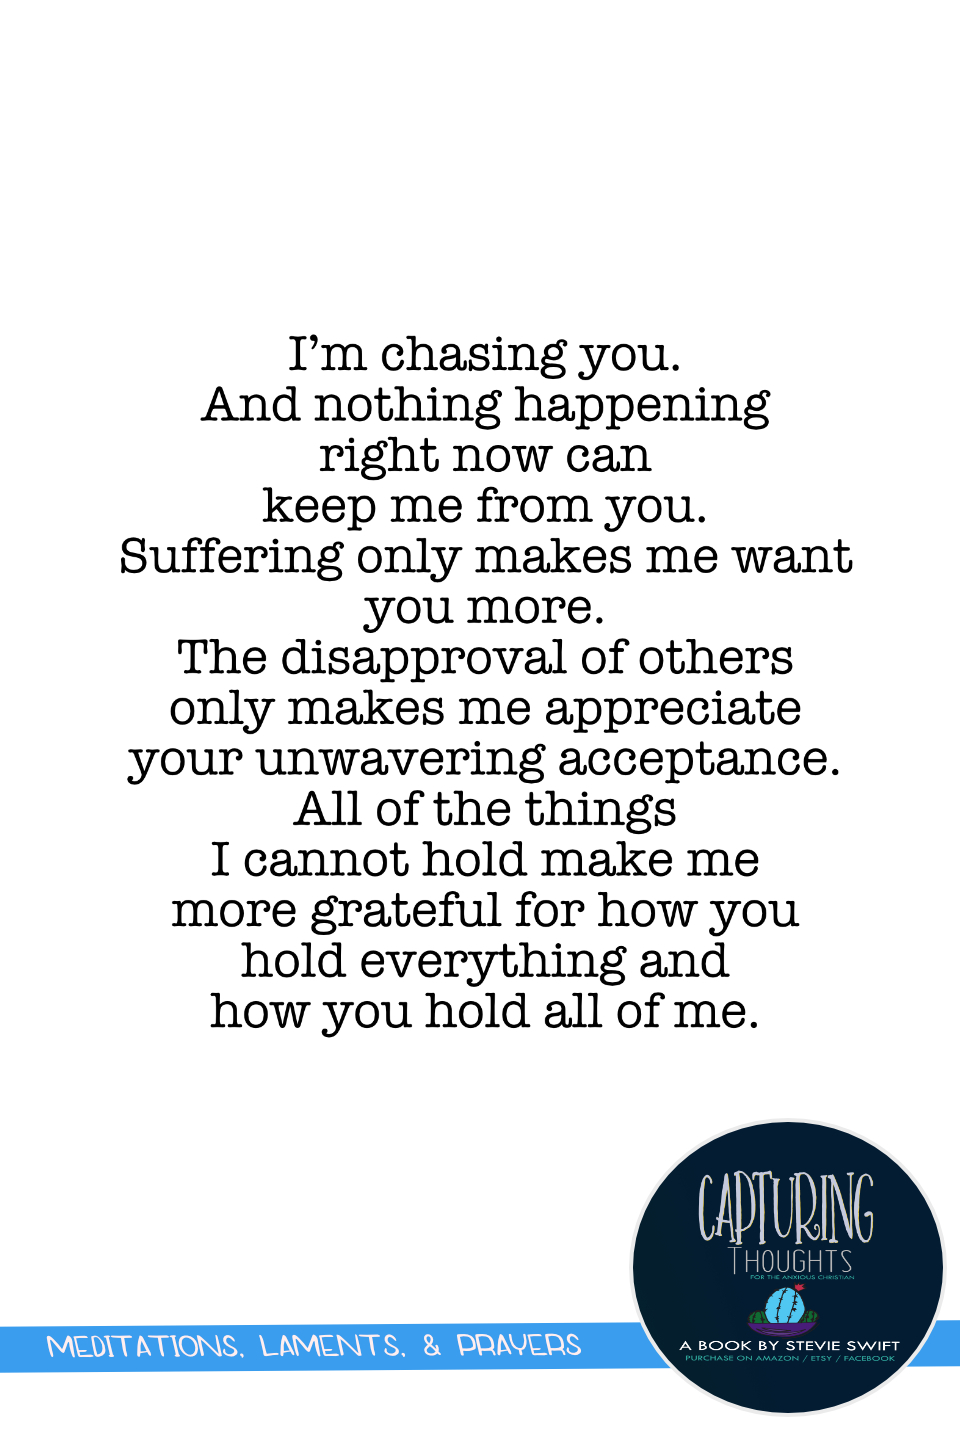 I'm chasing you. and nothing happening right now can keep me from you. suffering only makes me want you more. the disapproval of others only makes me appreciate your unwavering acceptance. all of the things i cannot hold make me more grateful for how you hold everything and how you hold all of me.